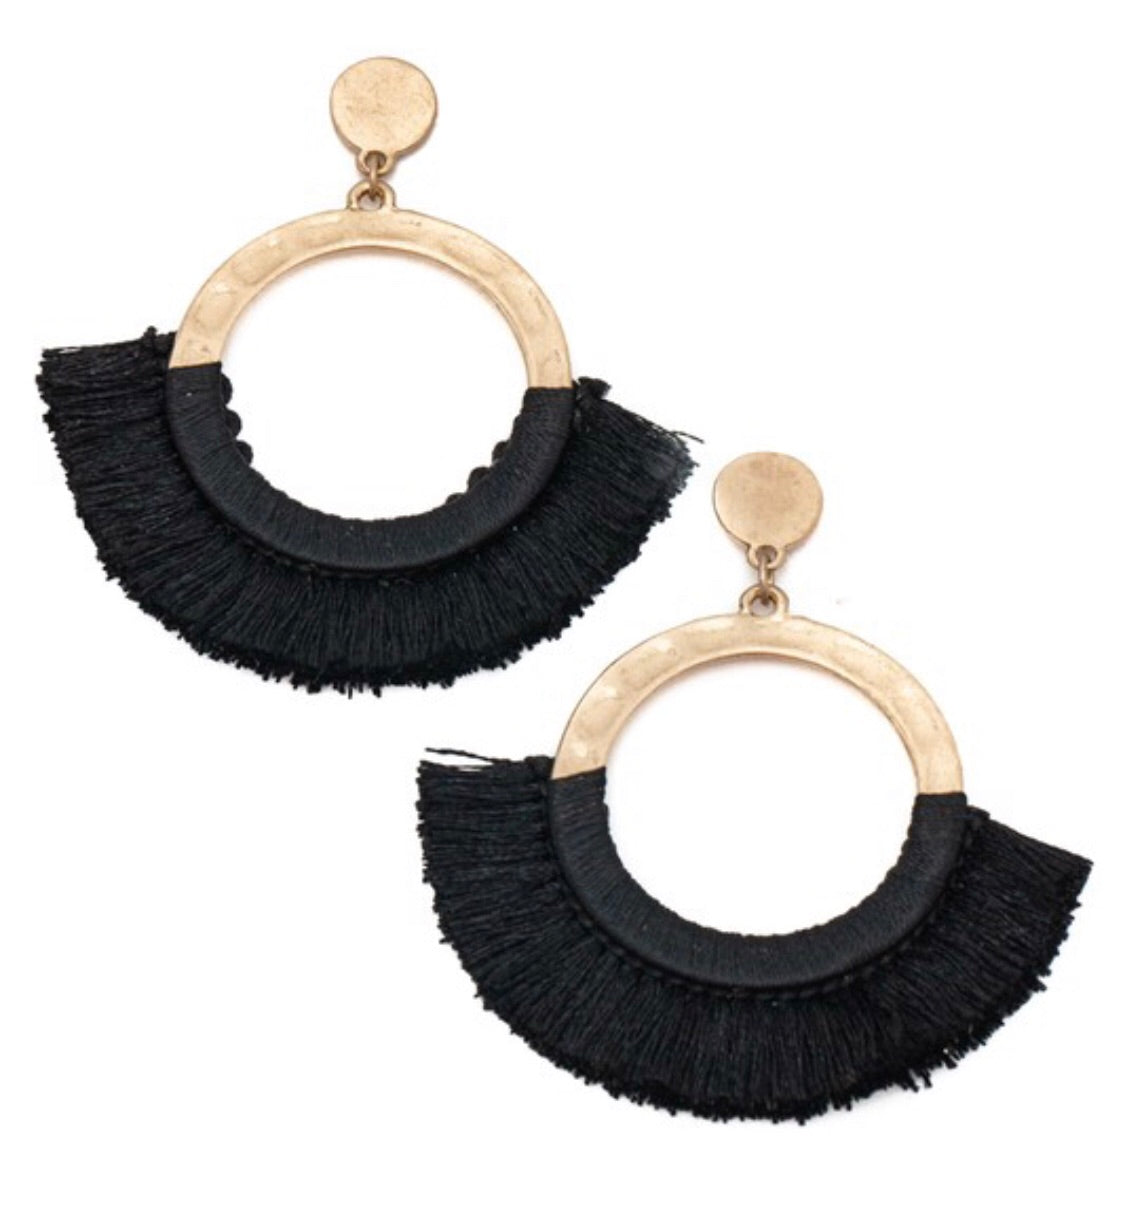 Round and Round Earrings in Black